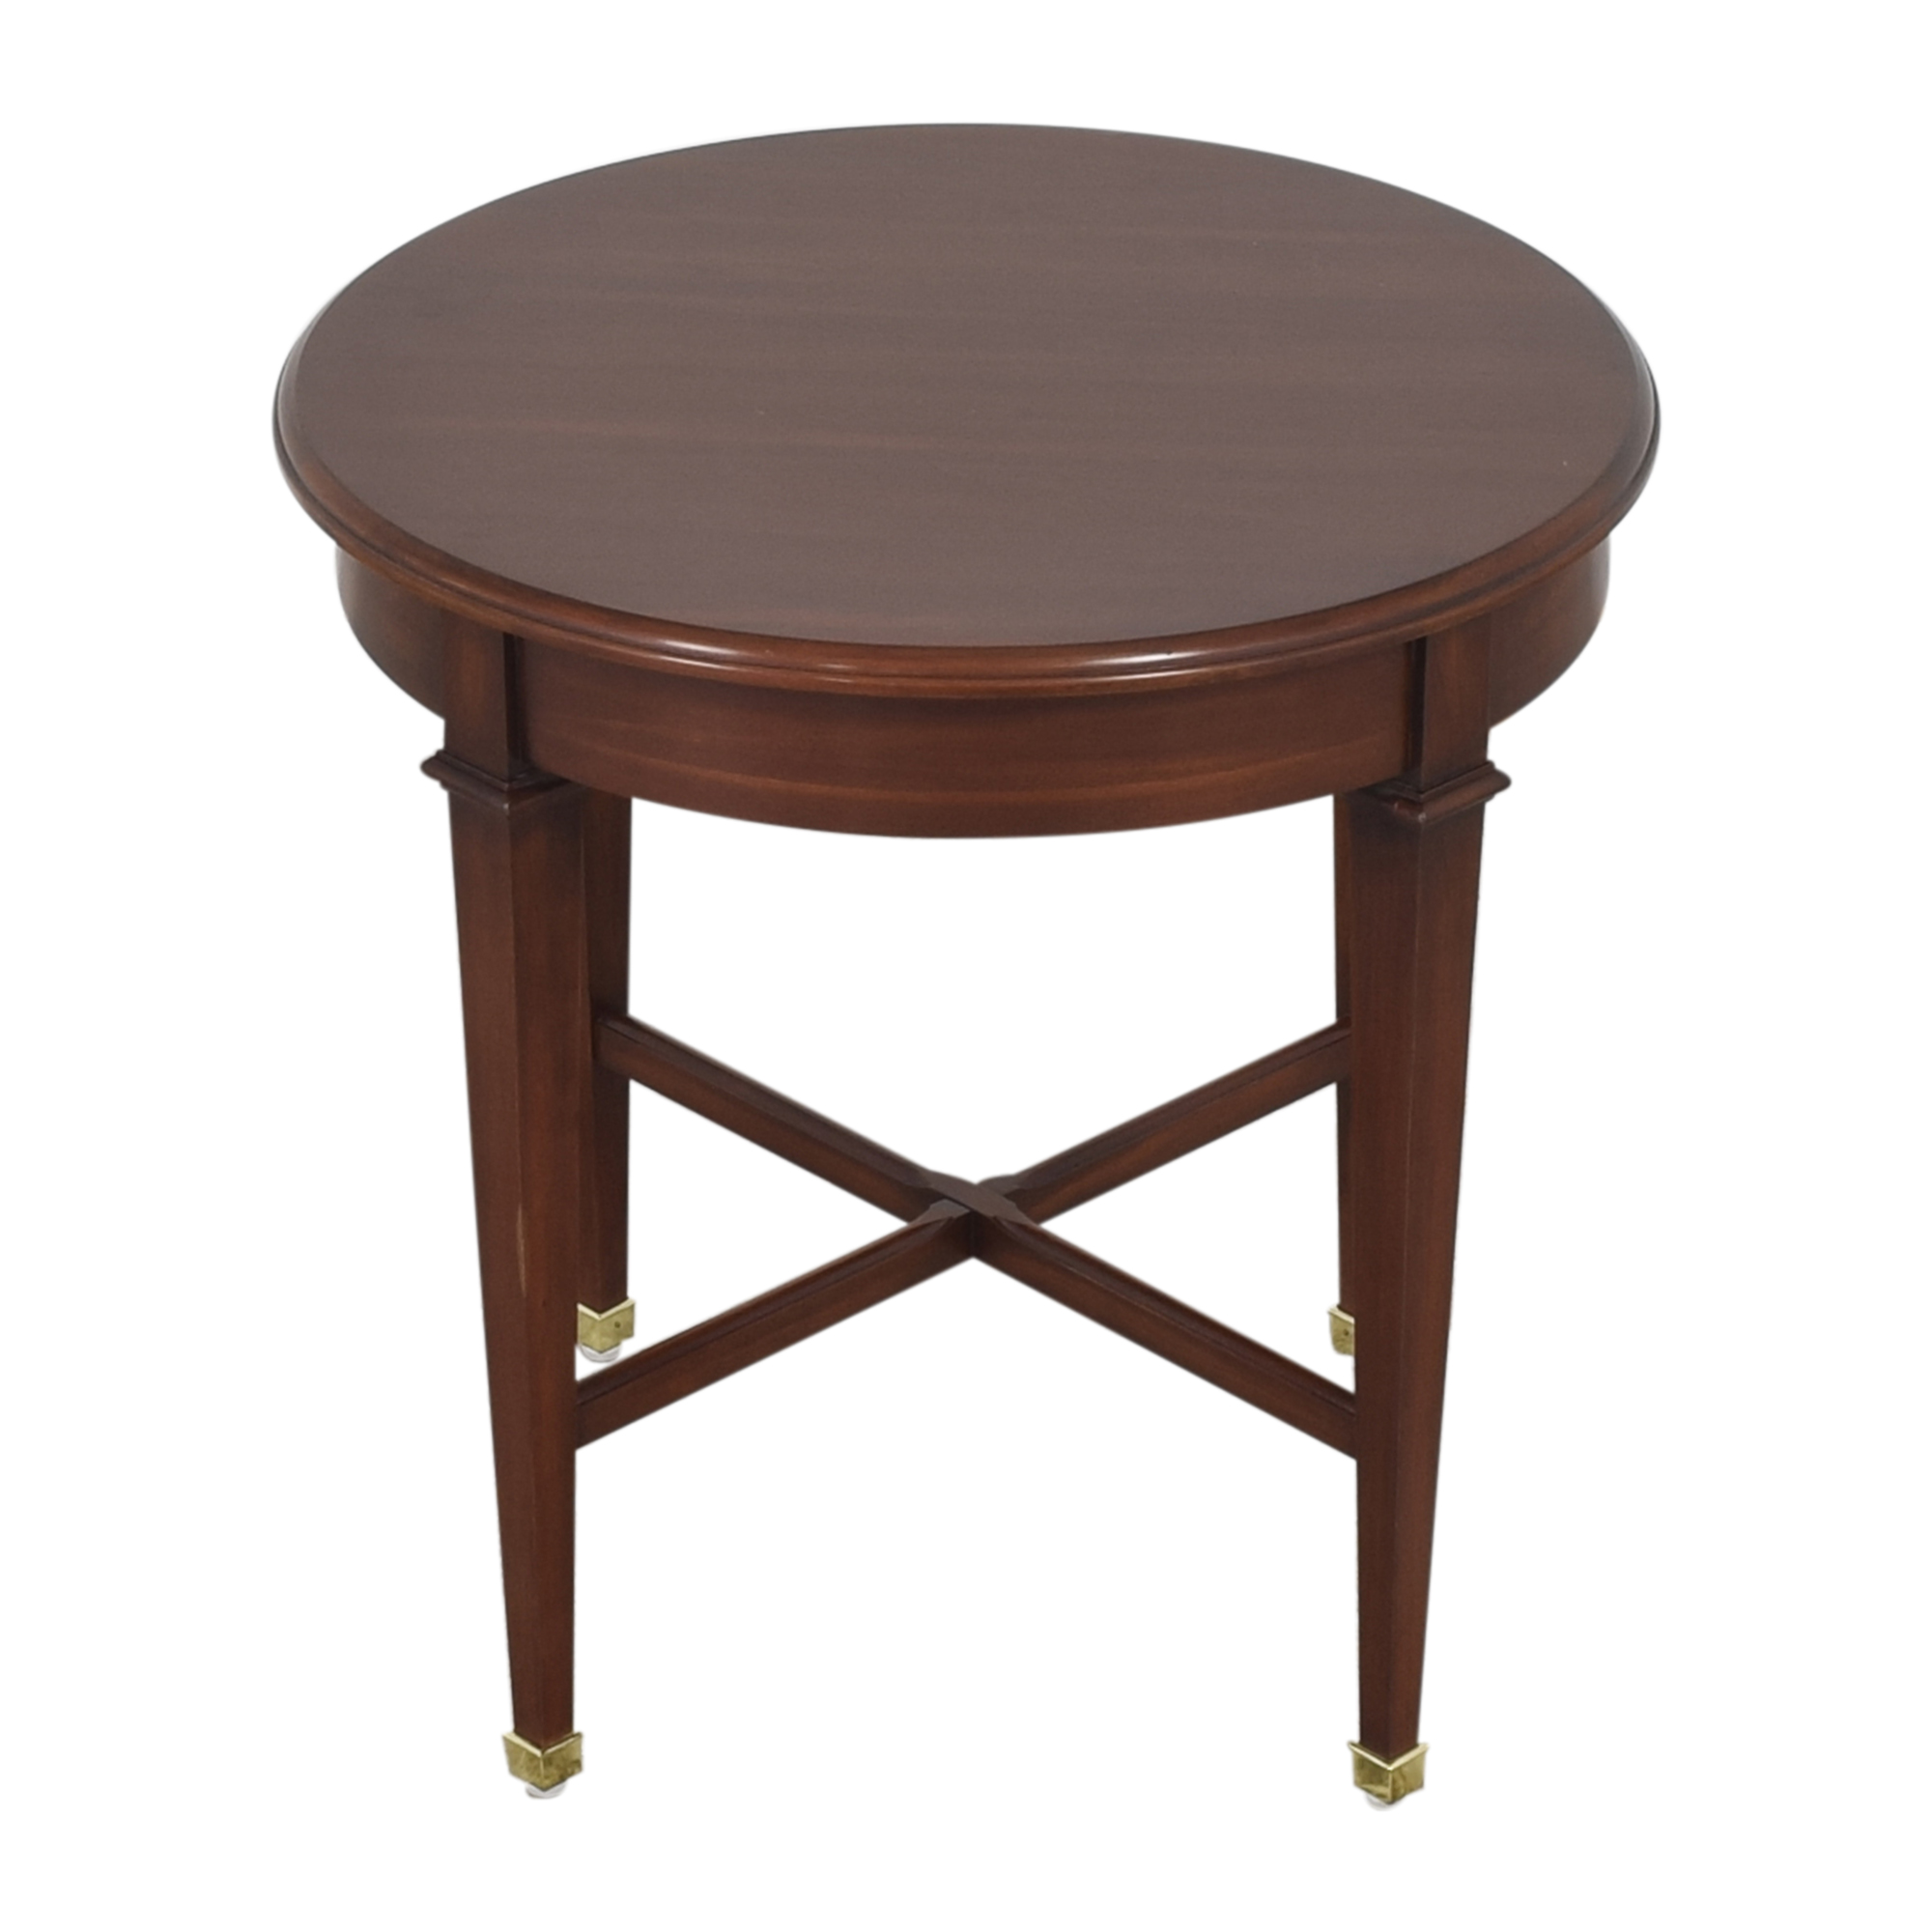 Harden Harden Round End Table pa